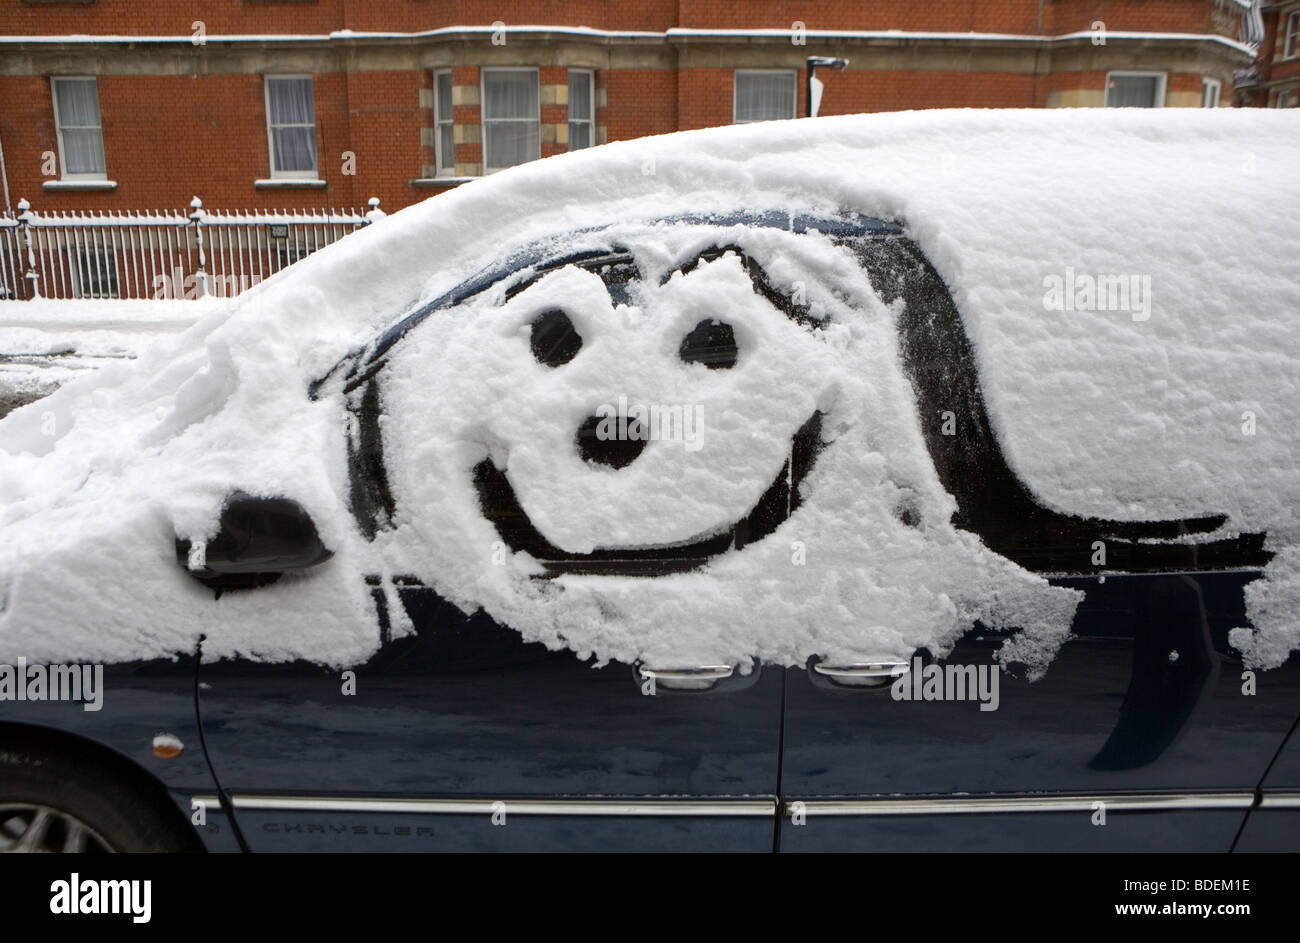 Smiley artwork on parked car after heavy snowfall, London, England, UK, Europe - Stock Image